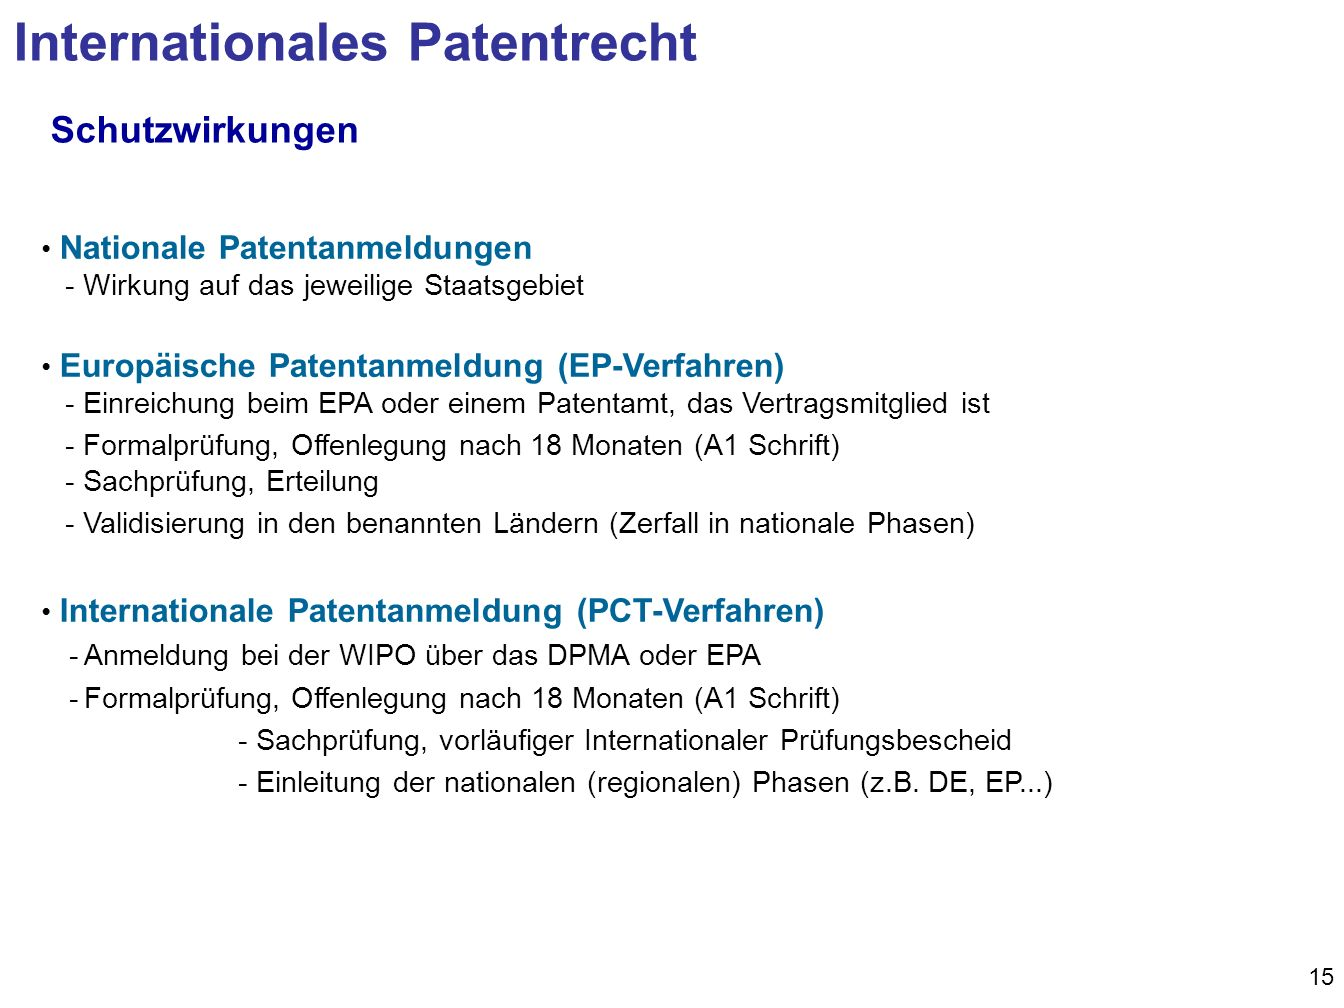 Internationales Patentrecht